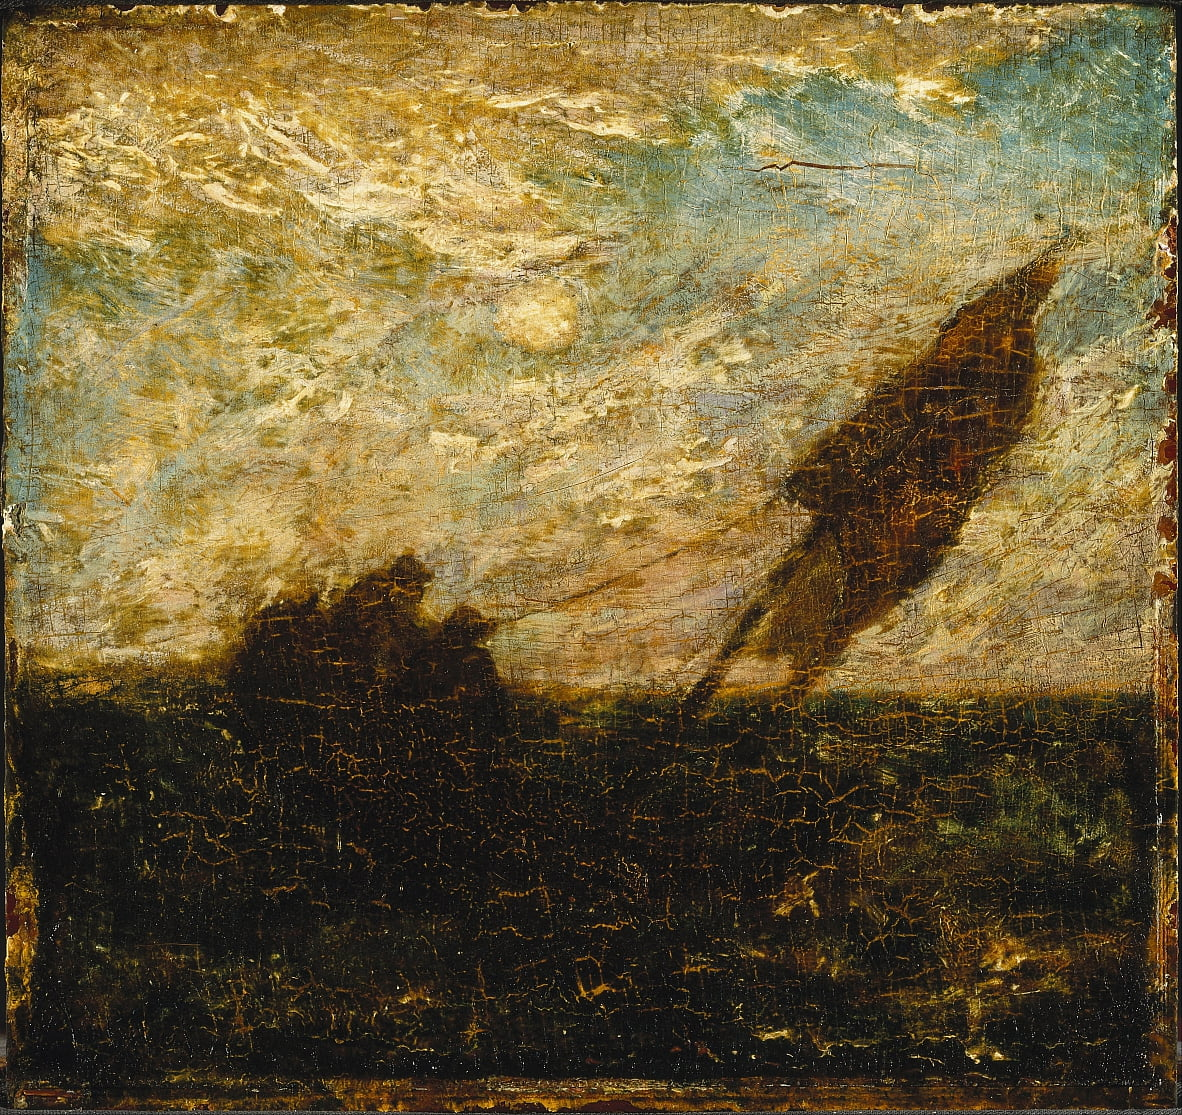 The Waste of Waters is Their Field by Albert Pinkham Ryder